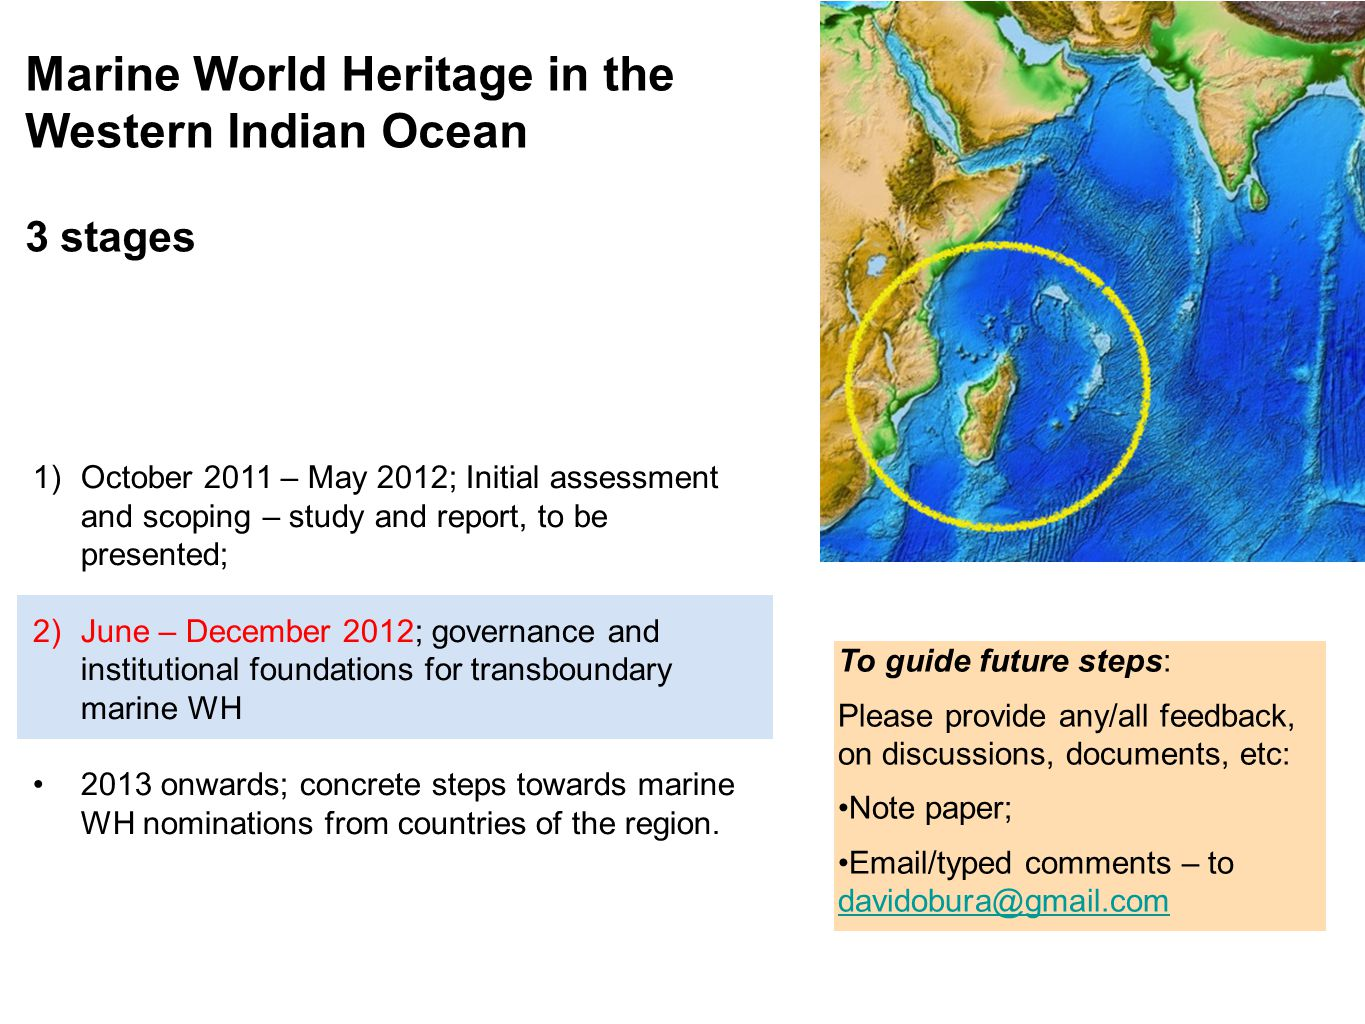 1)October 2011 – May 2012; Initial assessment and scoping – study and report, to be presented; 2)June – December 2012; governance and institutional foundations for transboundary marine WH 2013 onwards; concrete steps towards marine WH nominations from countries of the region.